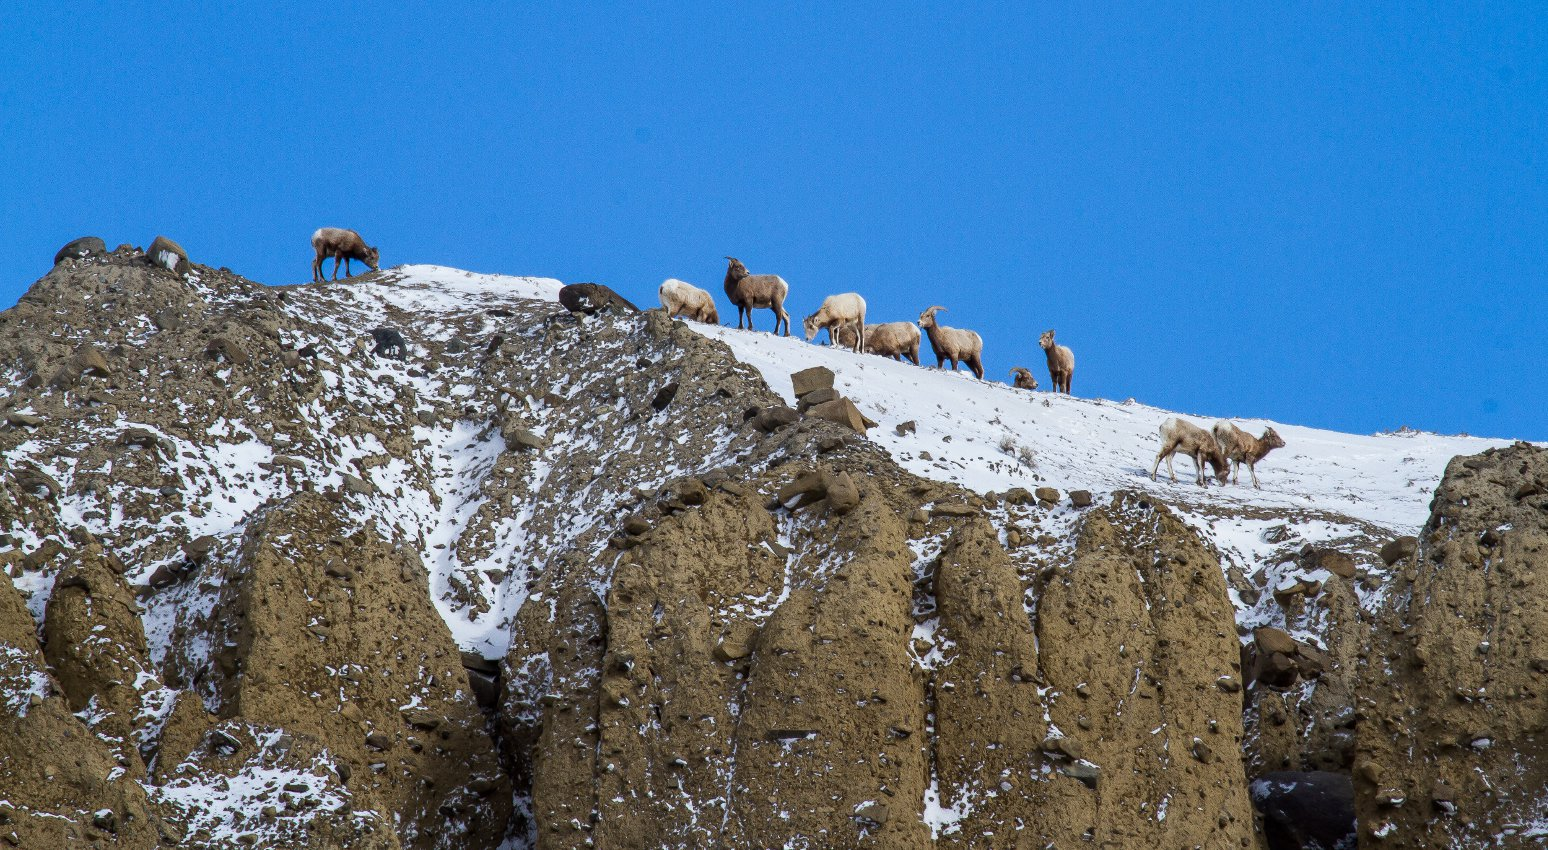 Yellowstone-Pics-By-Duane-Huie